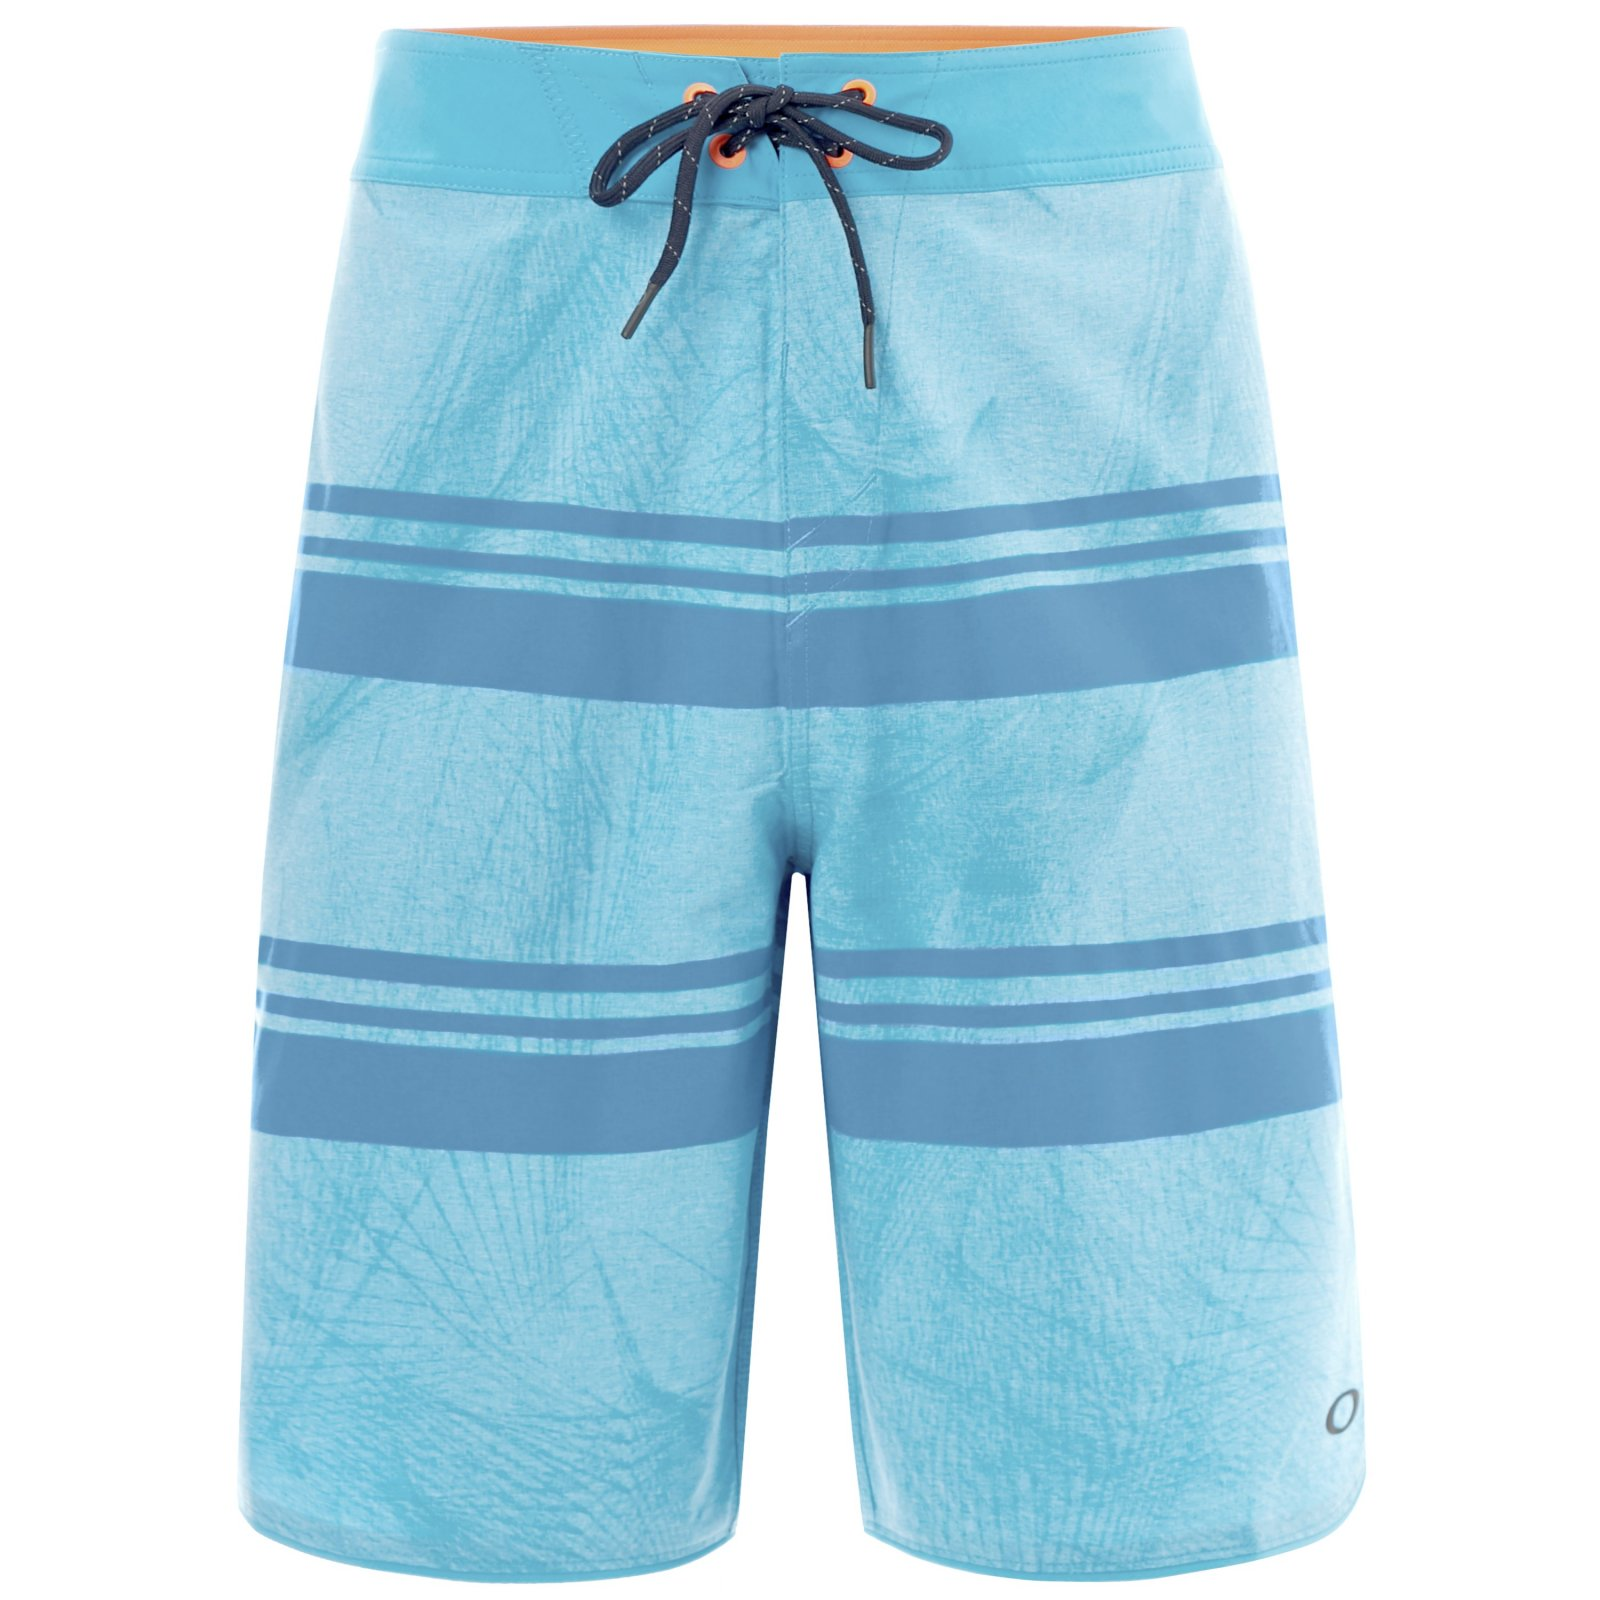 Oakley Racetracks 20 Boardshort